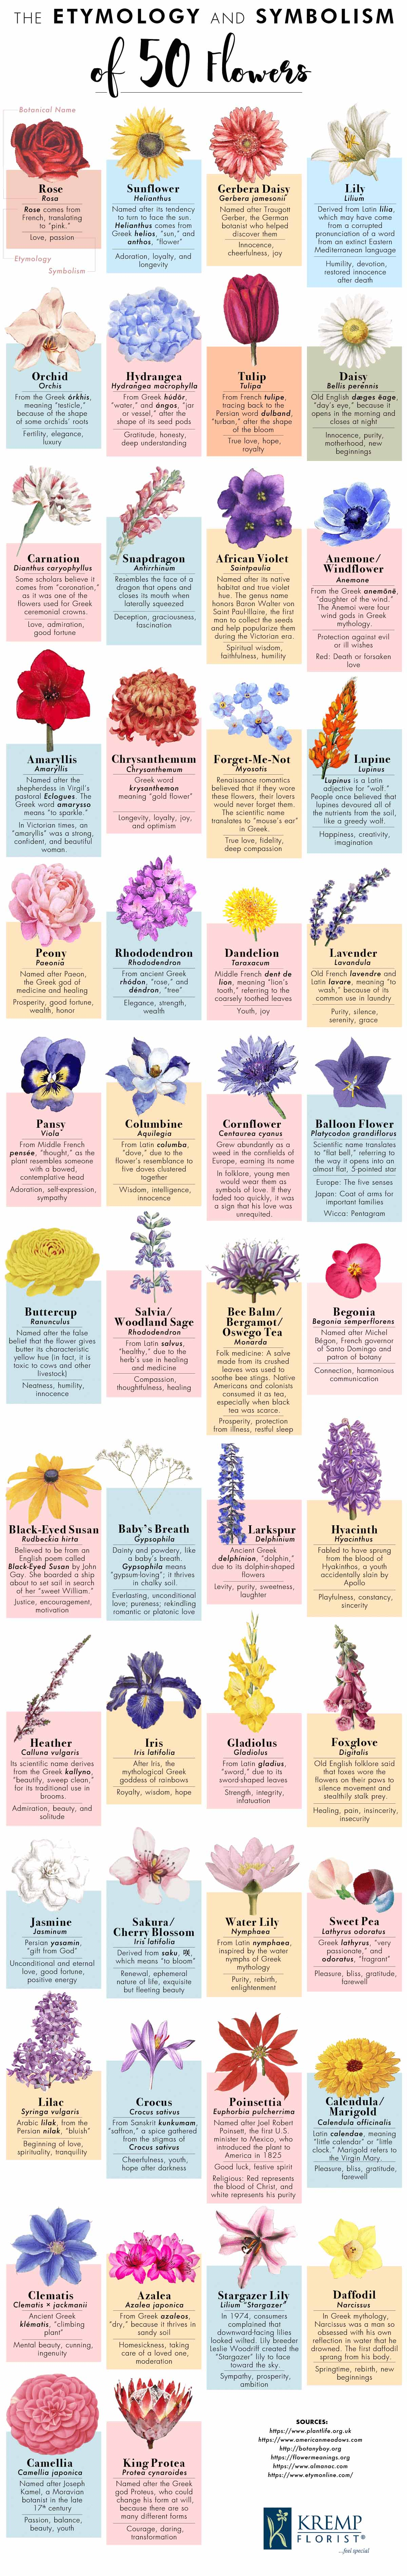 The Etymology and Symbolism of 50 Flowers